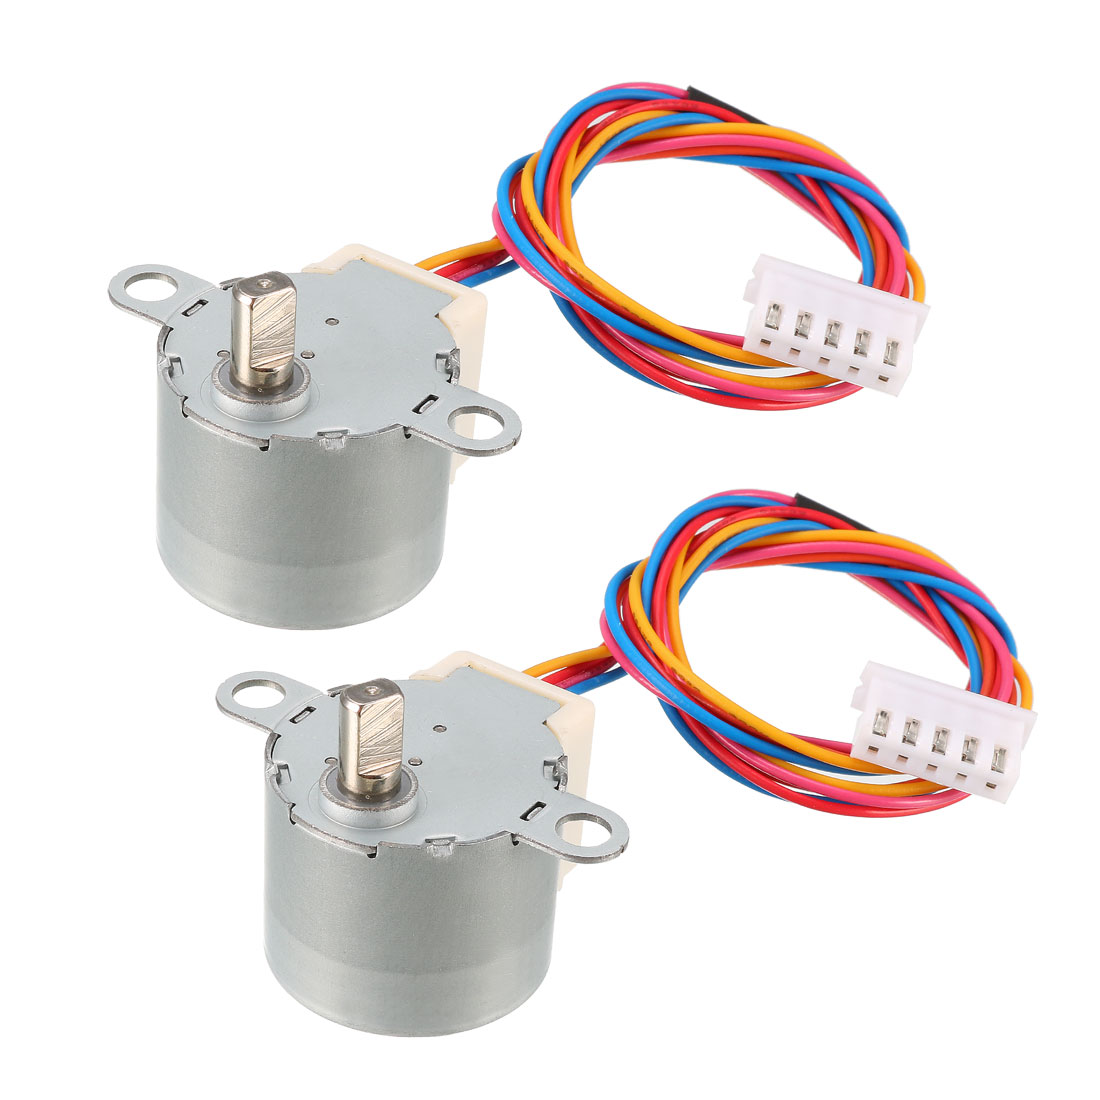 2PCS 24BYJ48 DC 12V Micro Reduction Stepper Stepping Motor 4-Phase 5-Wire